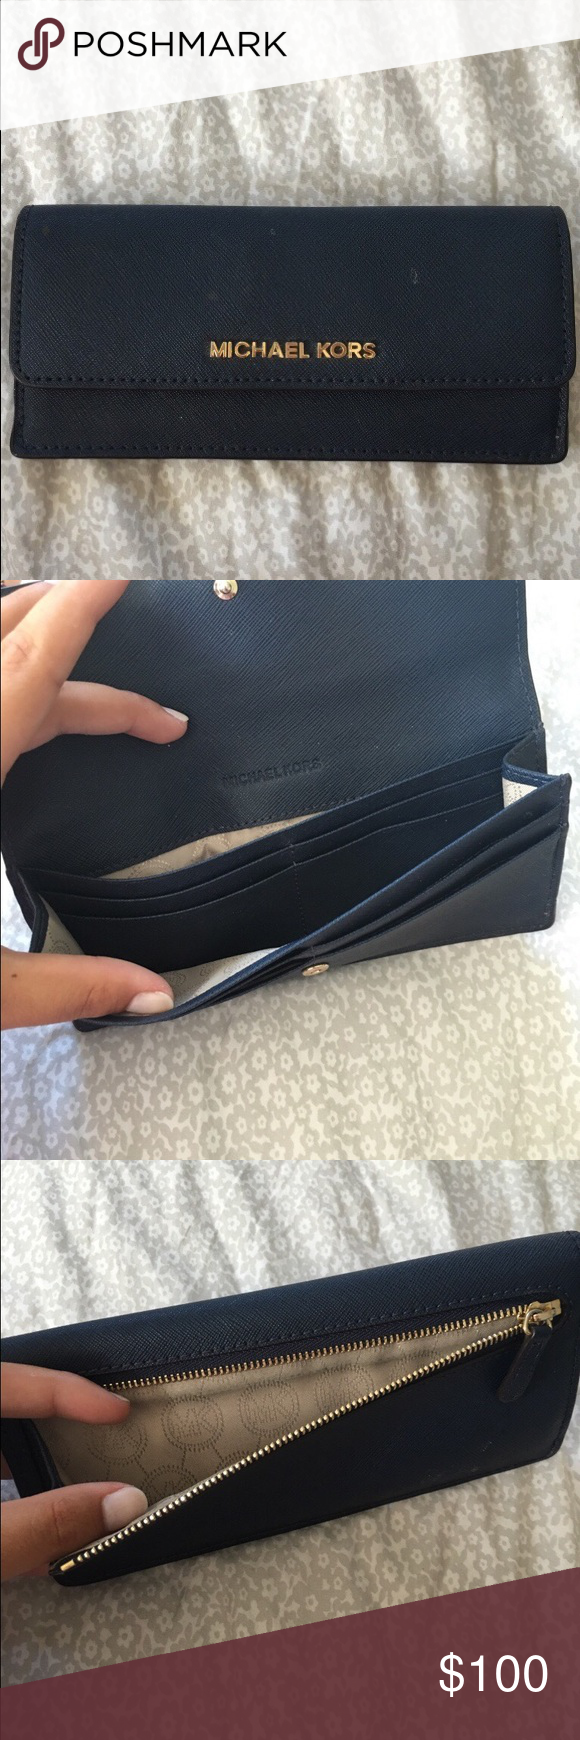 Navy Blue Michael Kors Envelope Wallet Envelope Wallet w two slots for cash and eight credit card holders Michael Kors Bags Wallets